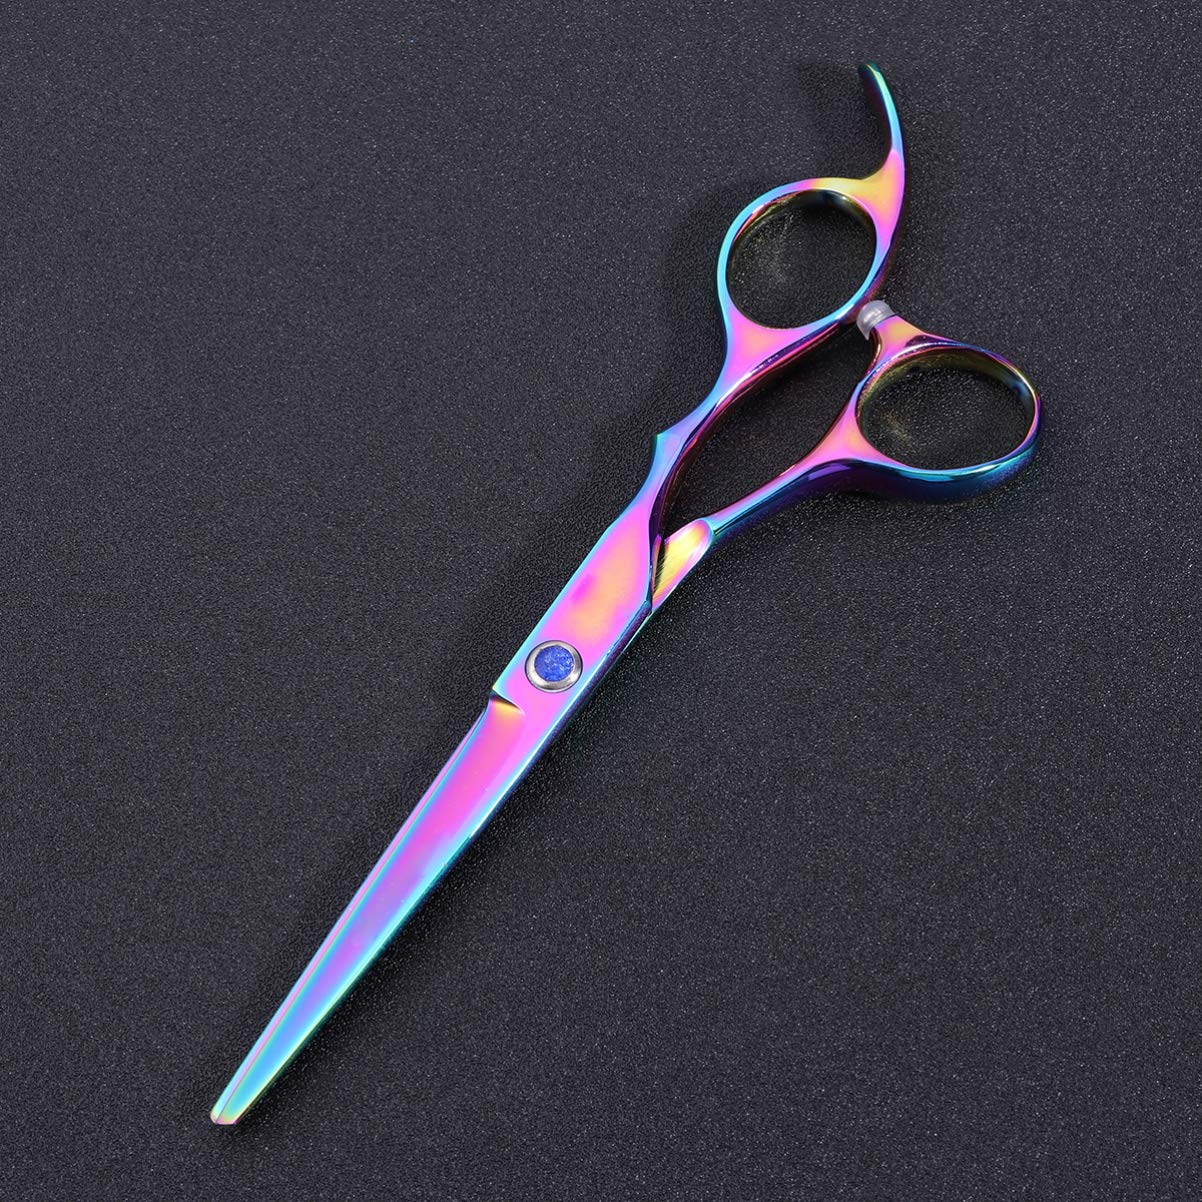 Professional Hair Cutting Shears, 6 Inches hair Cutting Stainless Steel Scissors Barber Hairdressing Scissors